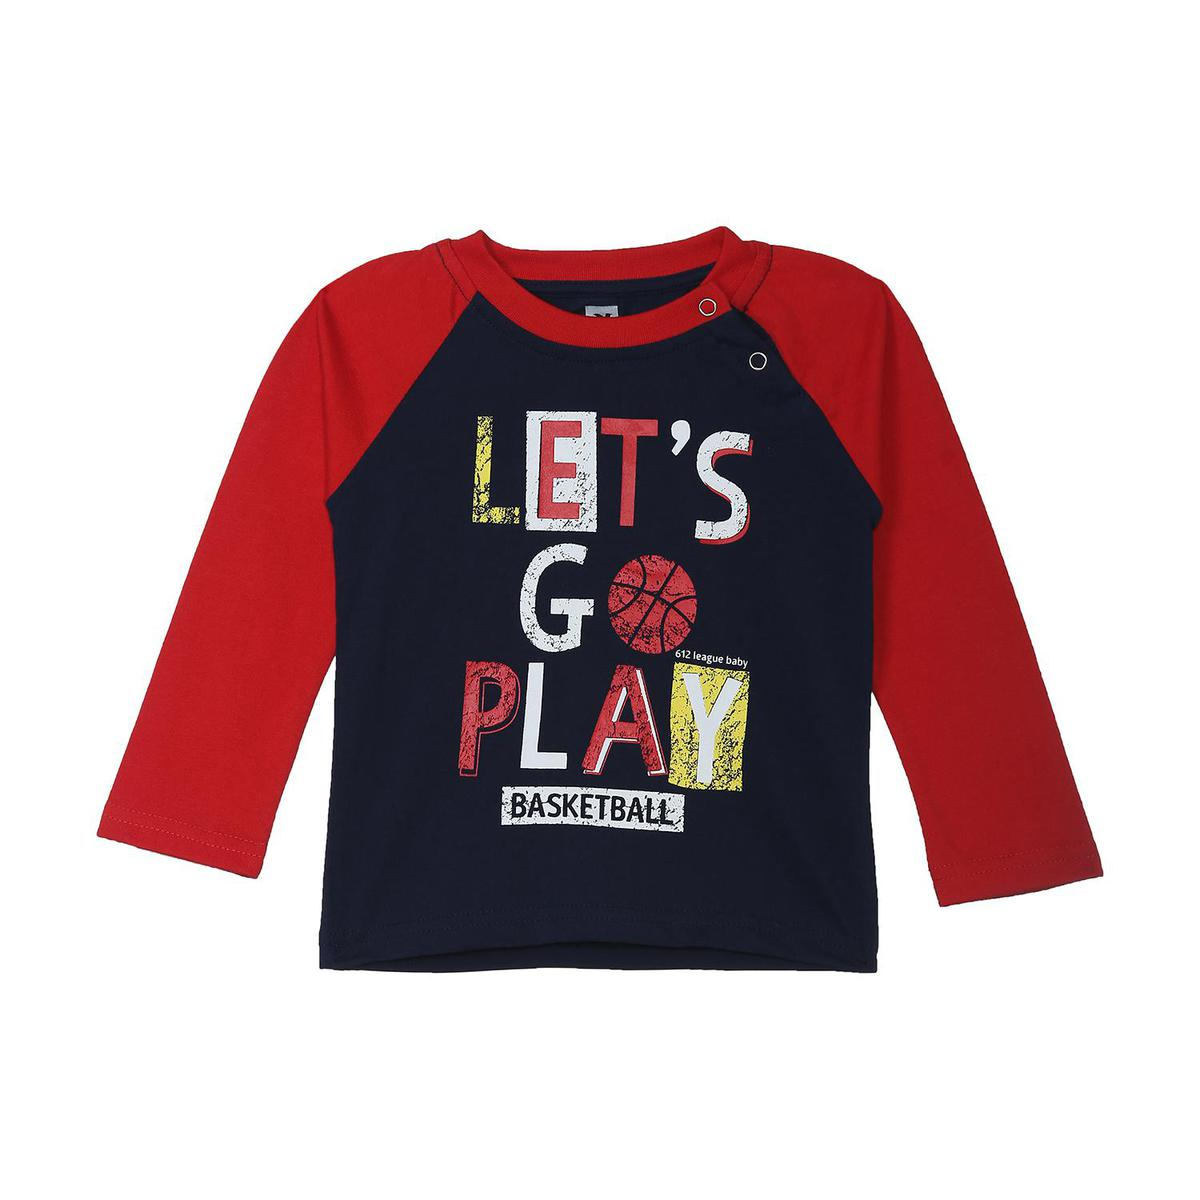 612 League - Boy's Navy Colored Knits Graphic T-shirt